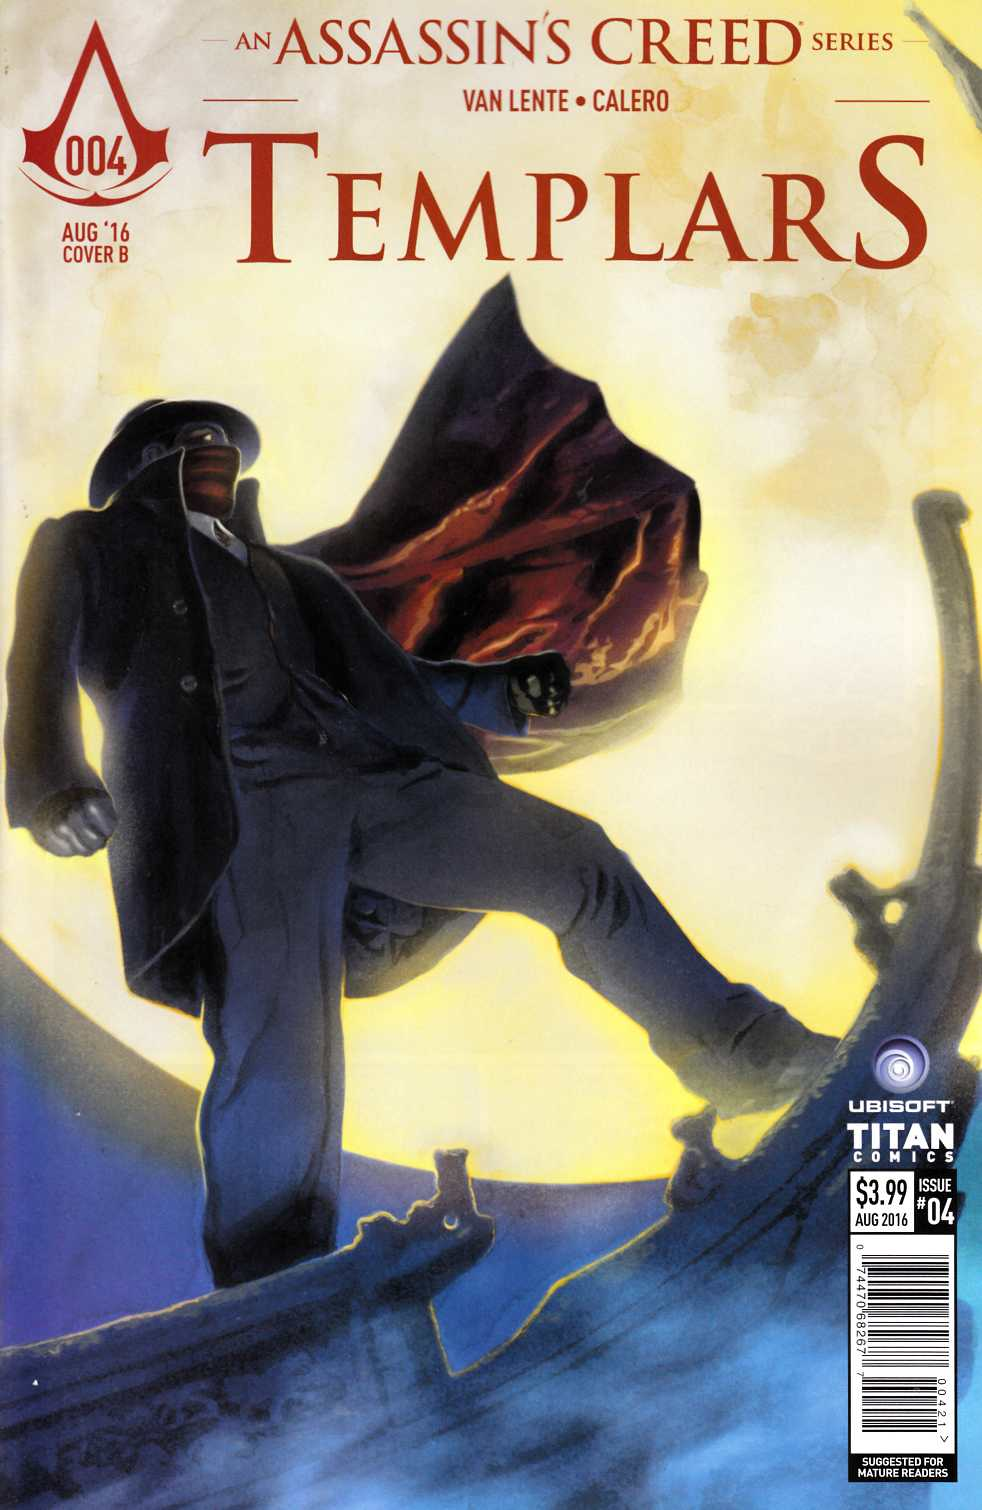 Assassins Creed Templars #4 Cover B [Titan Comic] THUMBNAIL